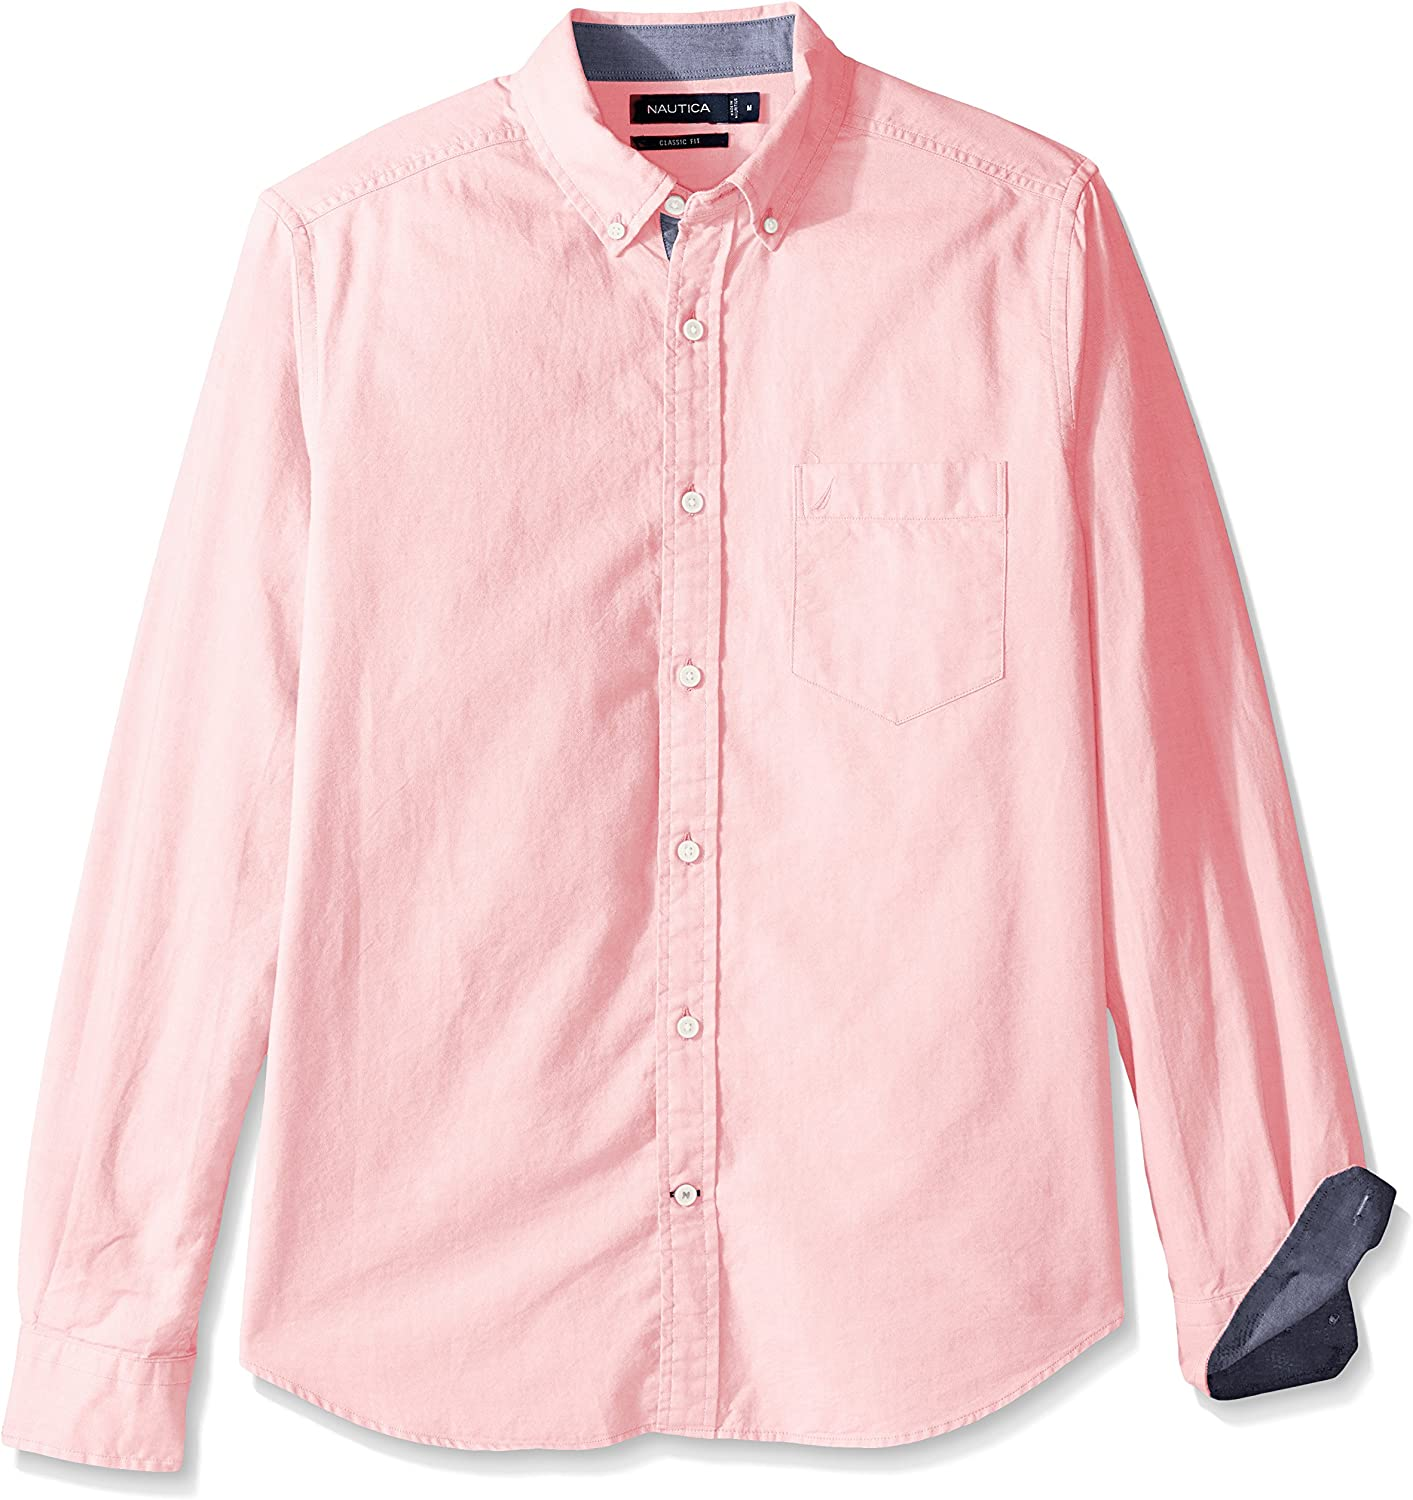 Nautica Men's Big and Tall Long Sleeve Button Down Solid Oxford Shirt